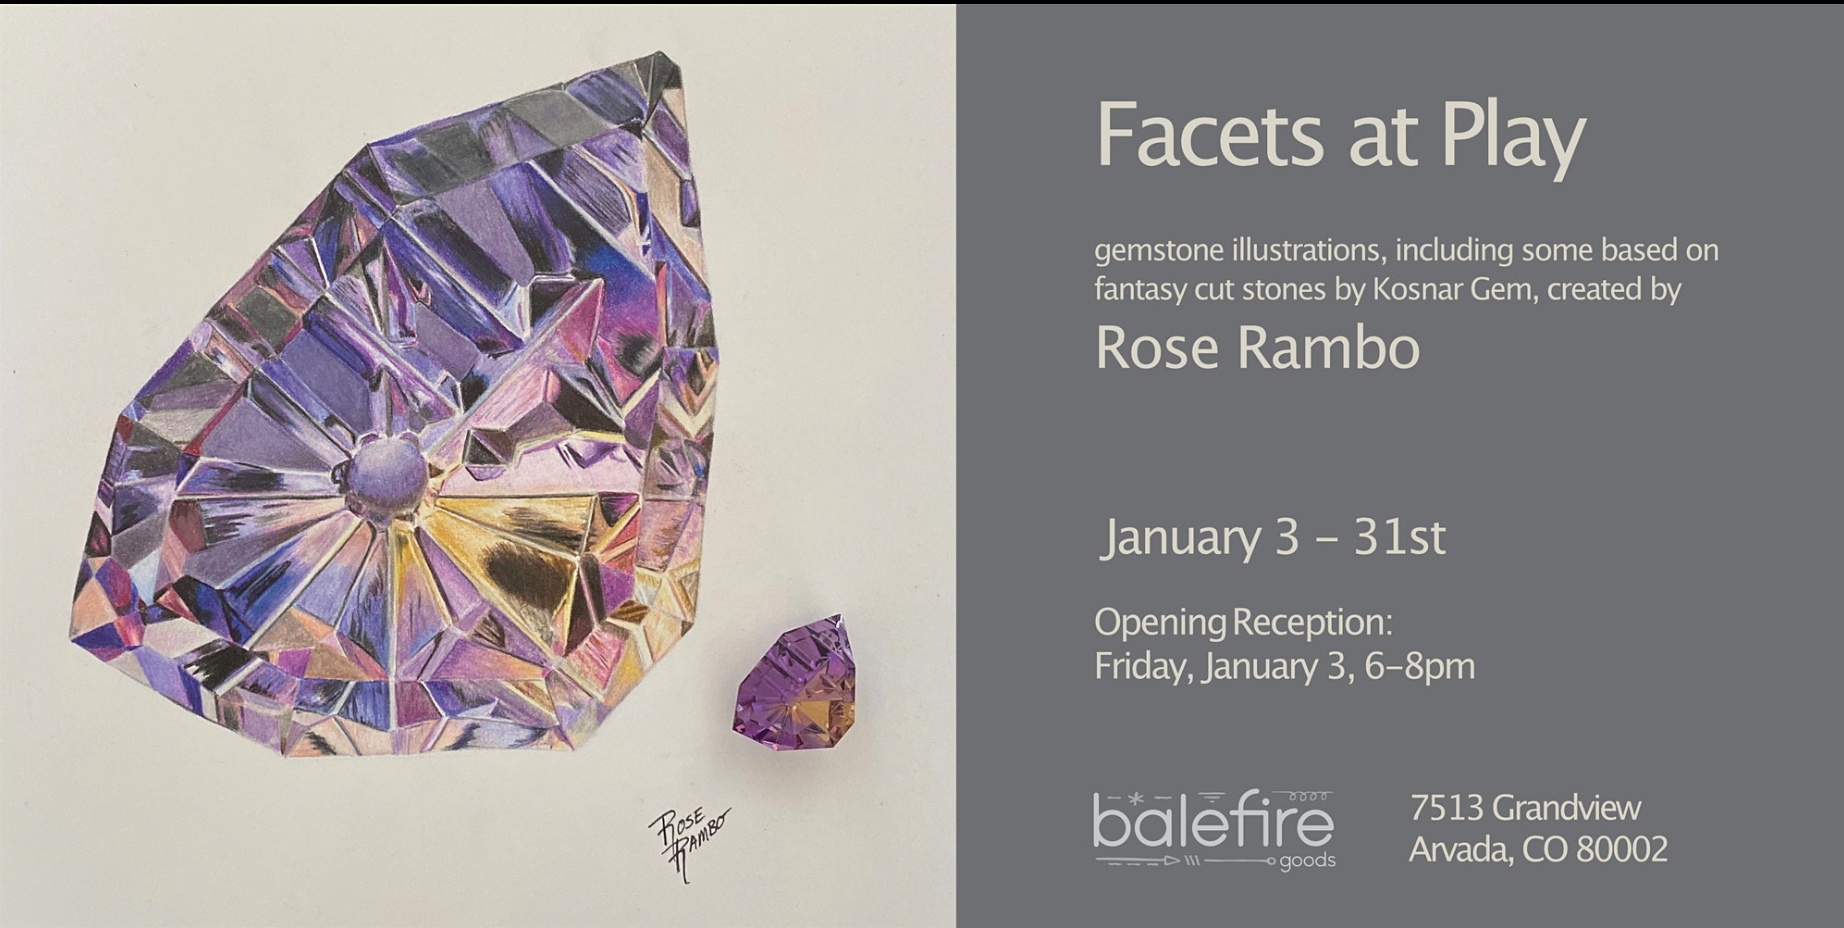 Facets at Play: First Friday Art Opening